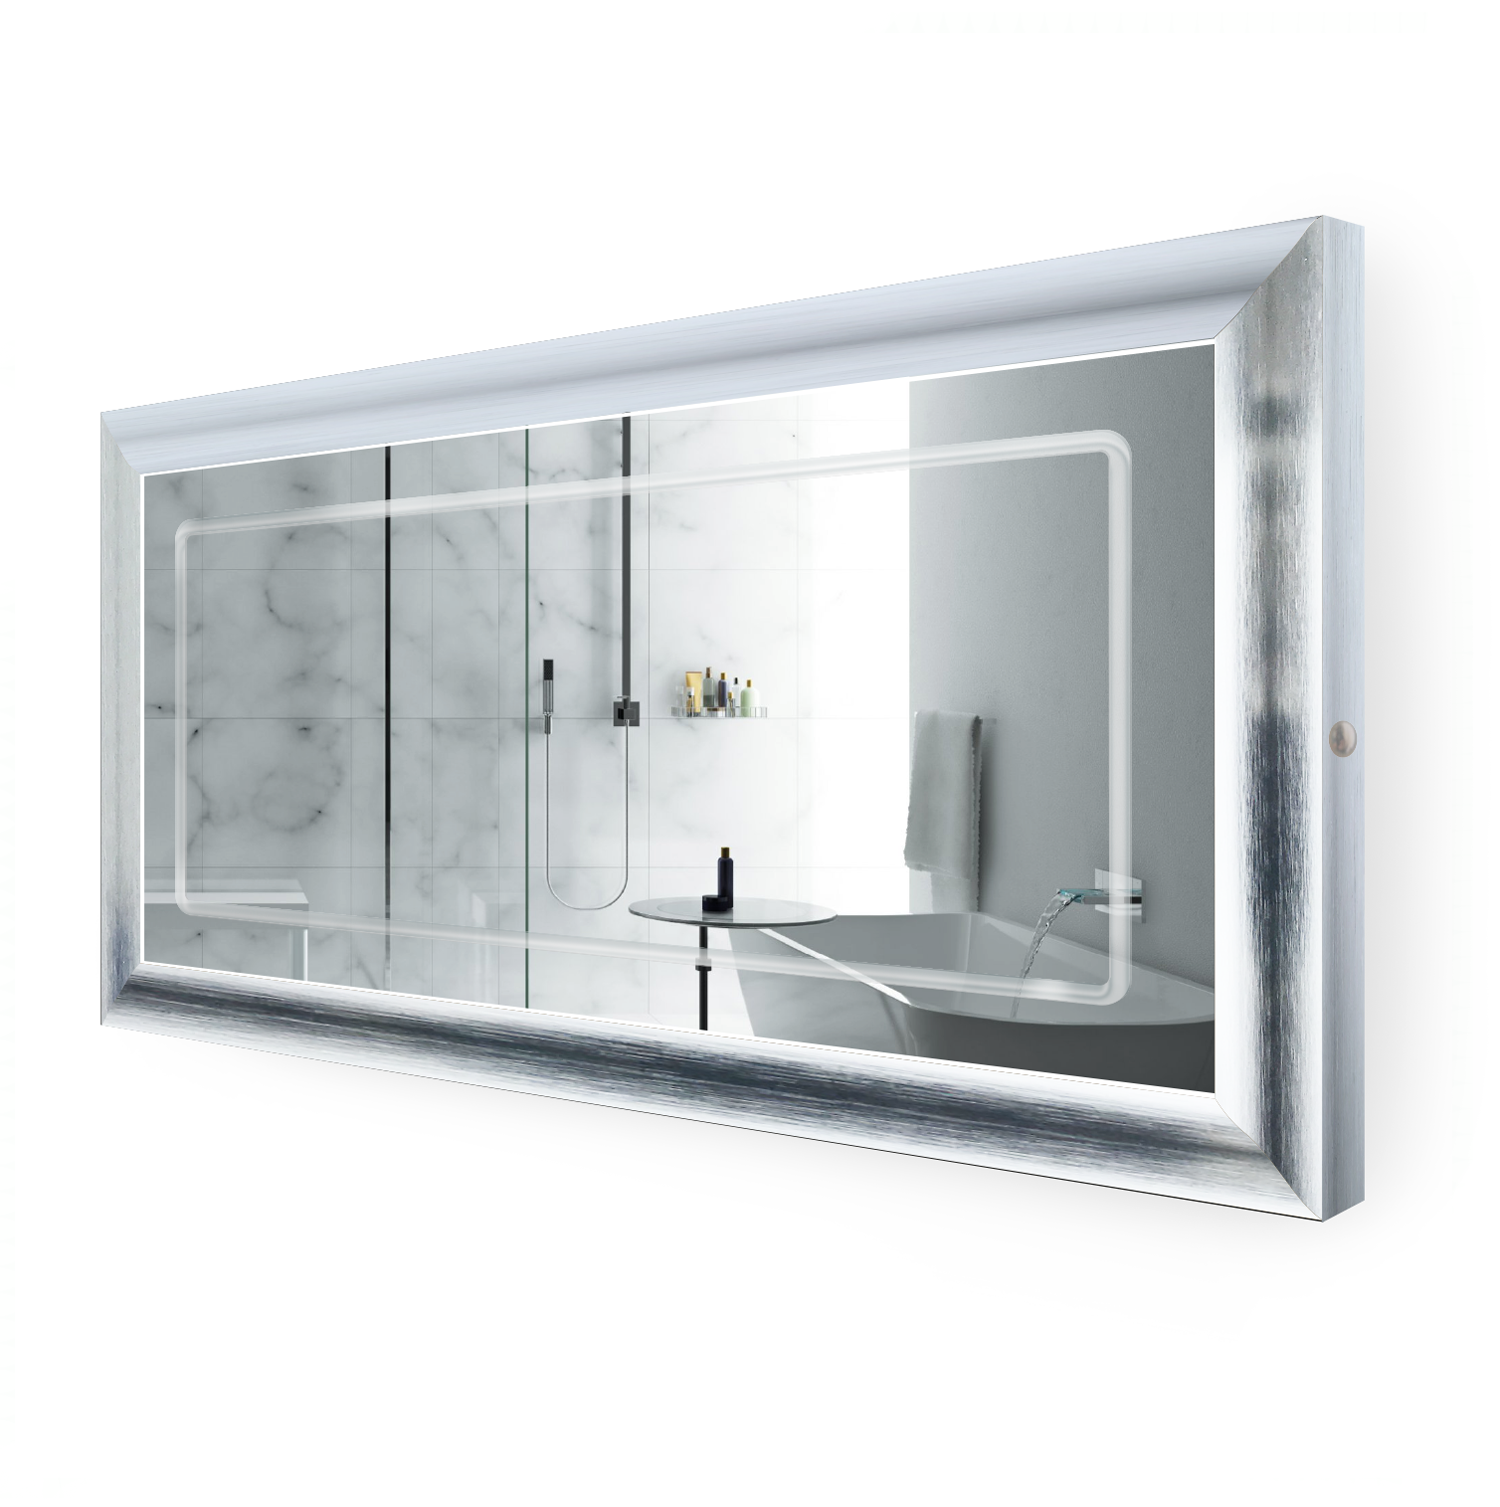 LED Lighted 60 Inch x 30 Inch Bathroom Silver Frame Mirror with Defogger